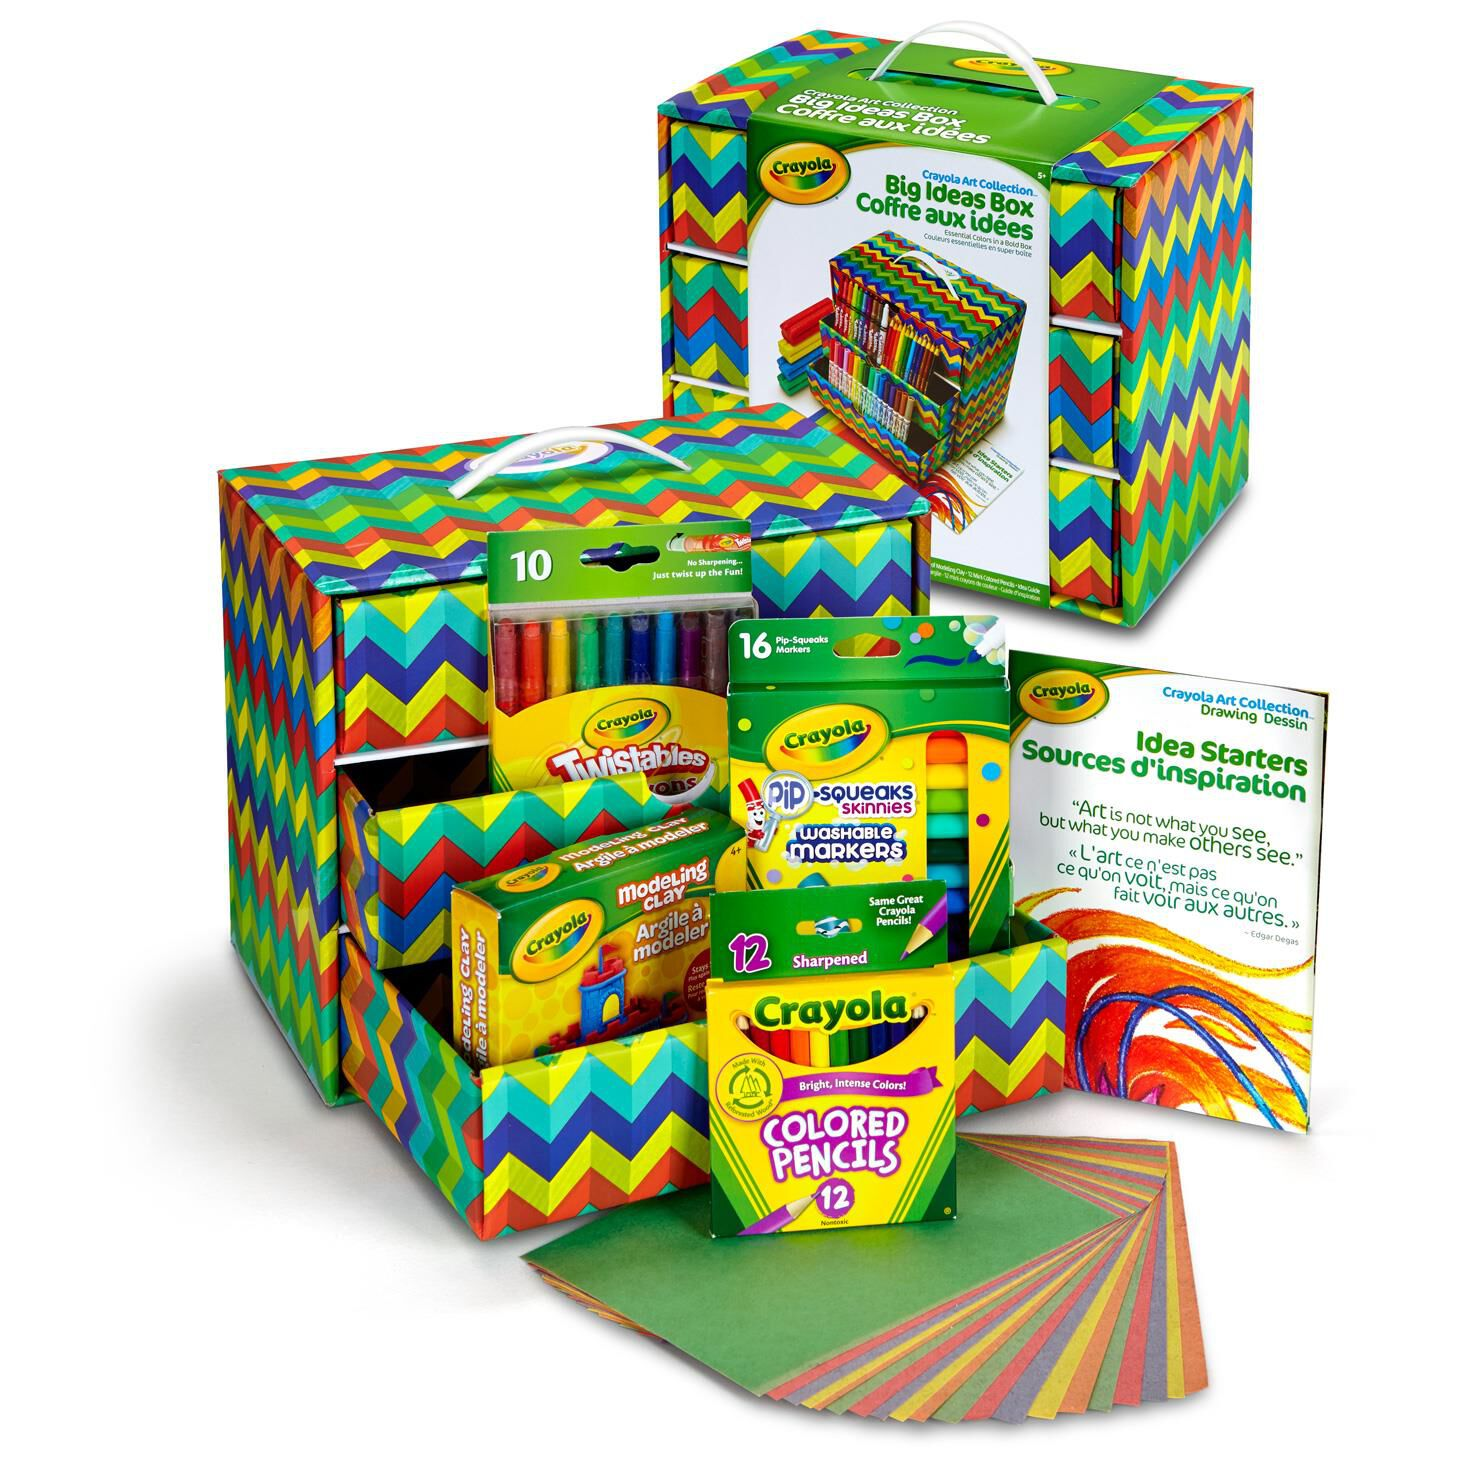 Crayola® Big Ideas Box For Art Supplies Storage   Arts U0026 Crafts   Hallmark